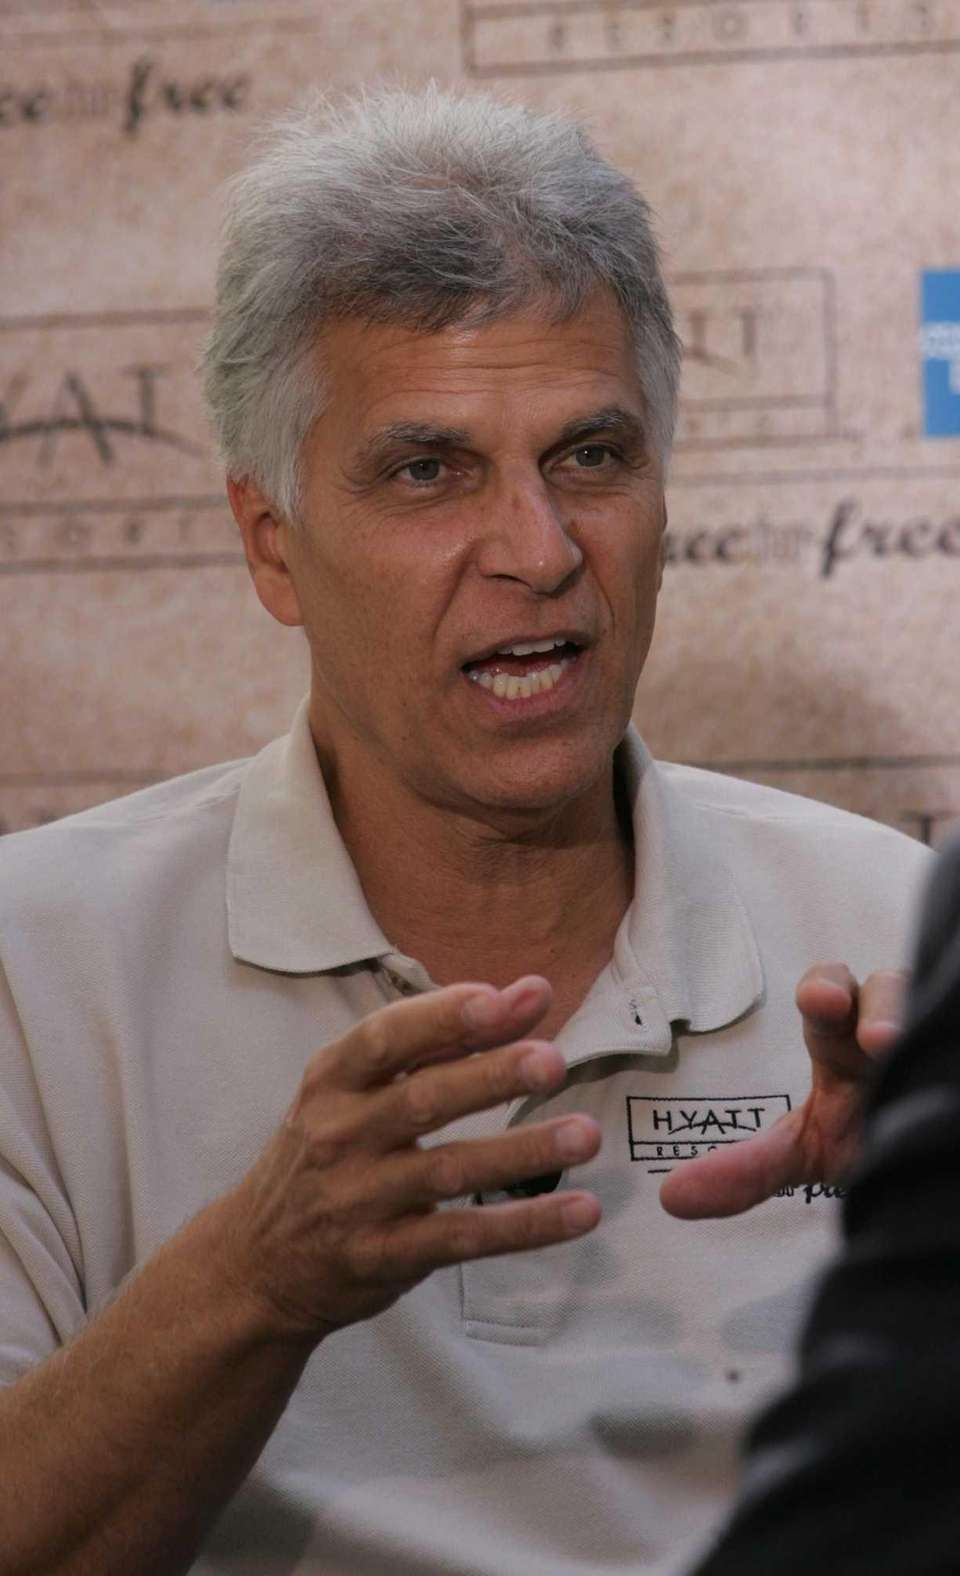 Mark Spitz tried his luck with acting and